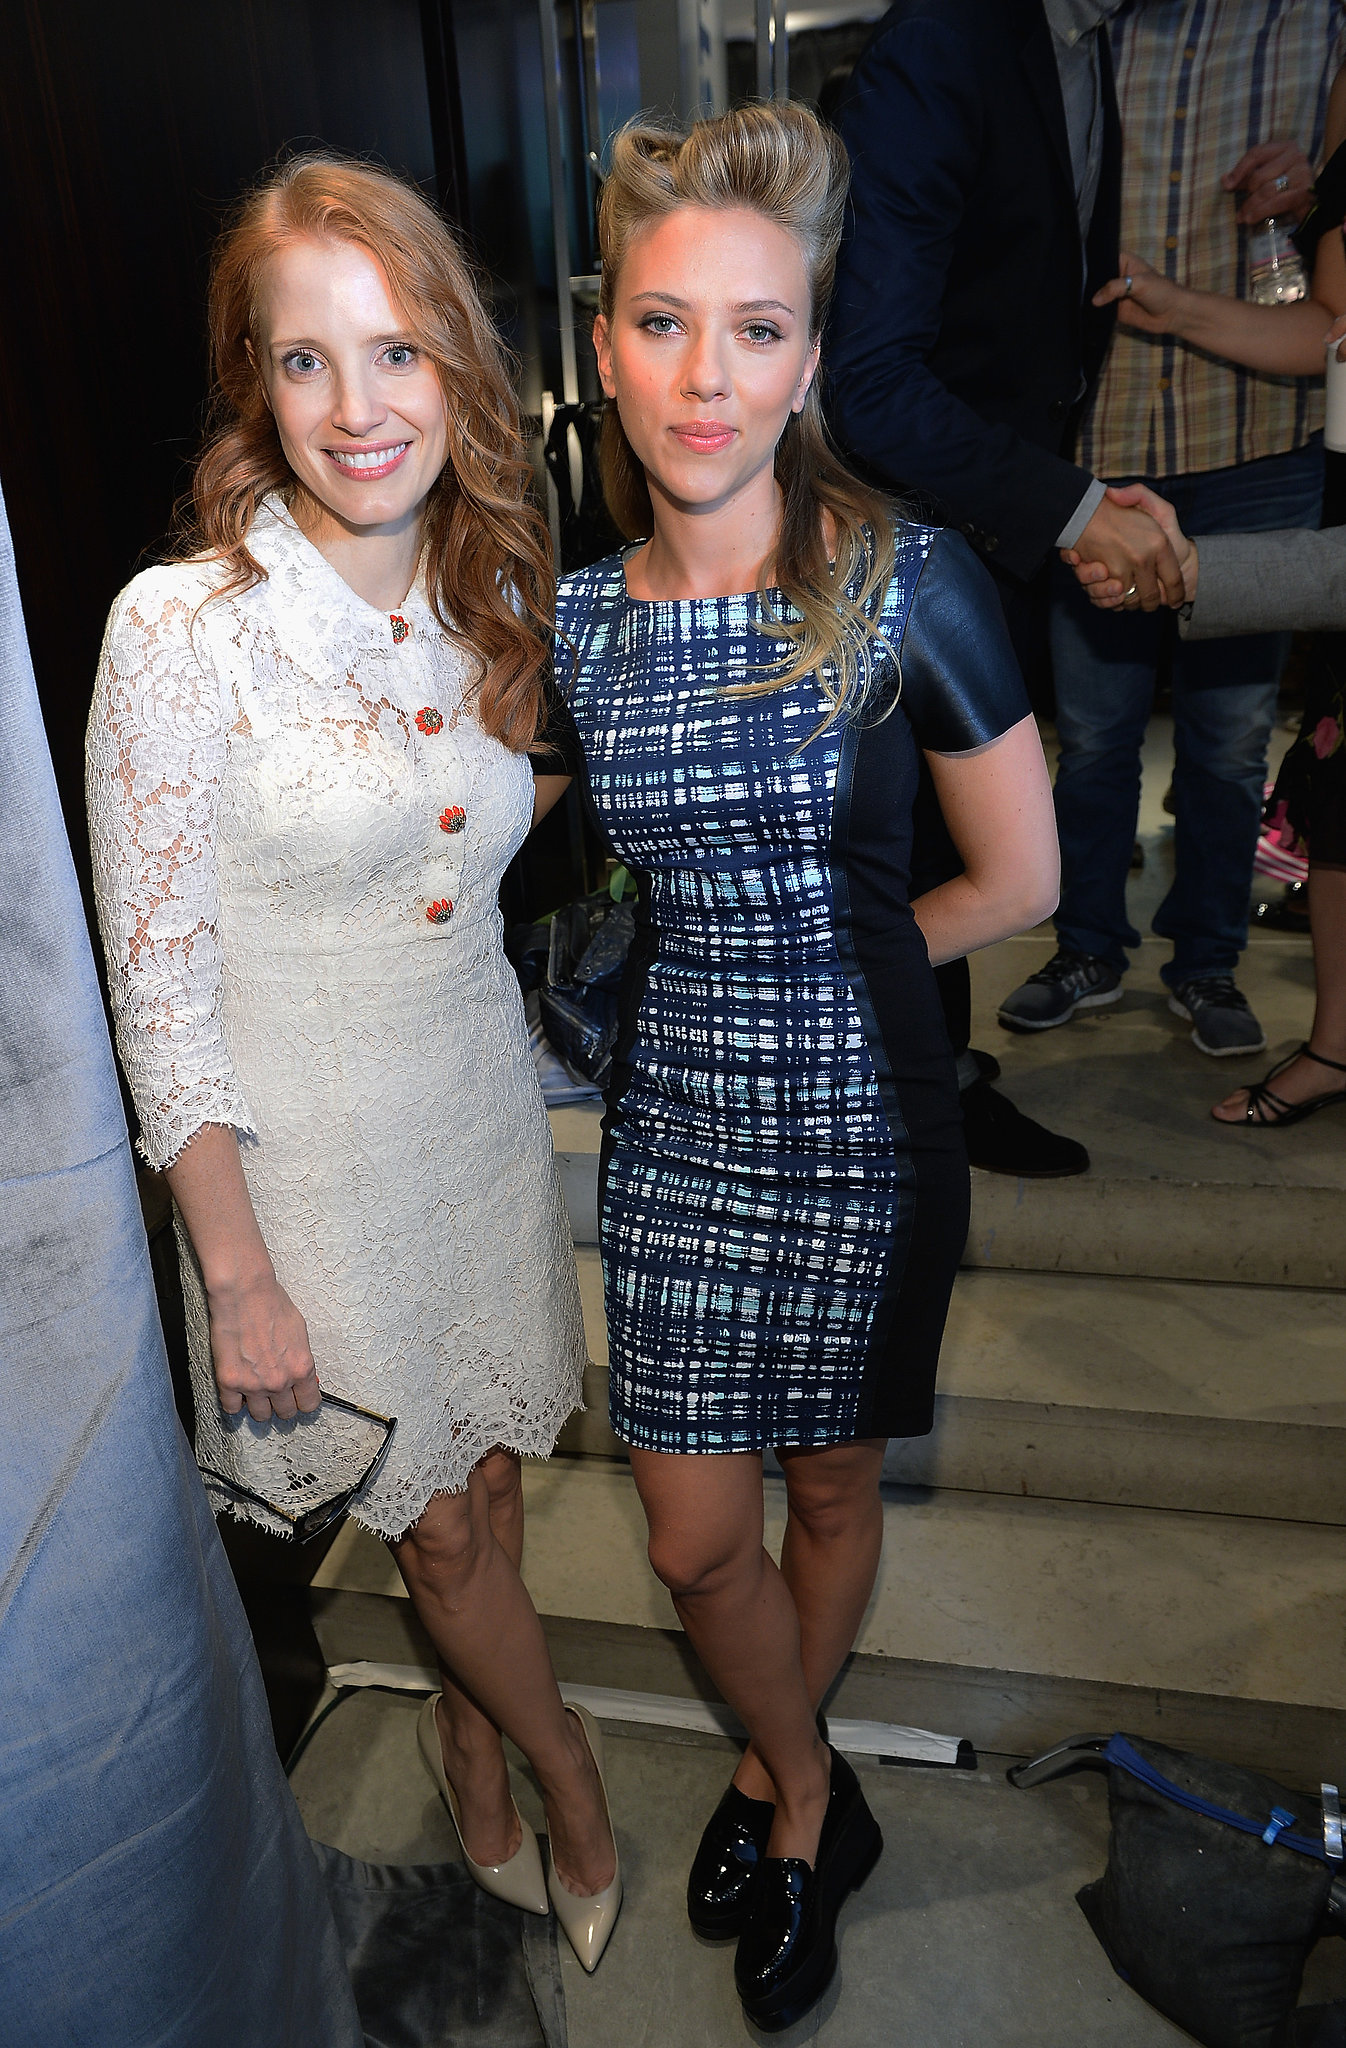 Scarlett Johansson met up with Jessica Chastain.